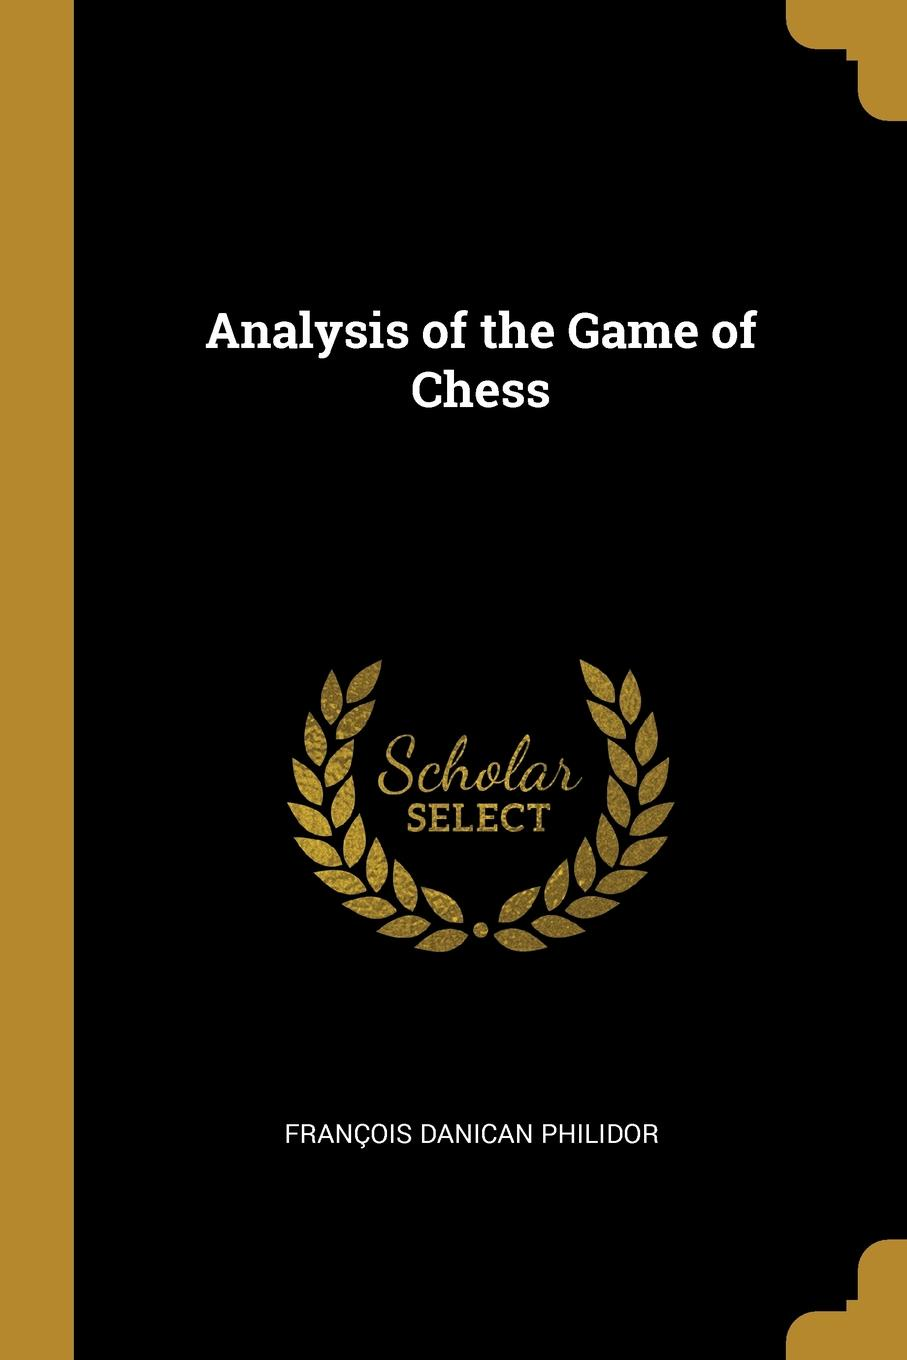 François Danican Philidor. Analysis of the Game of Chess